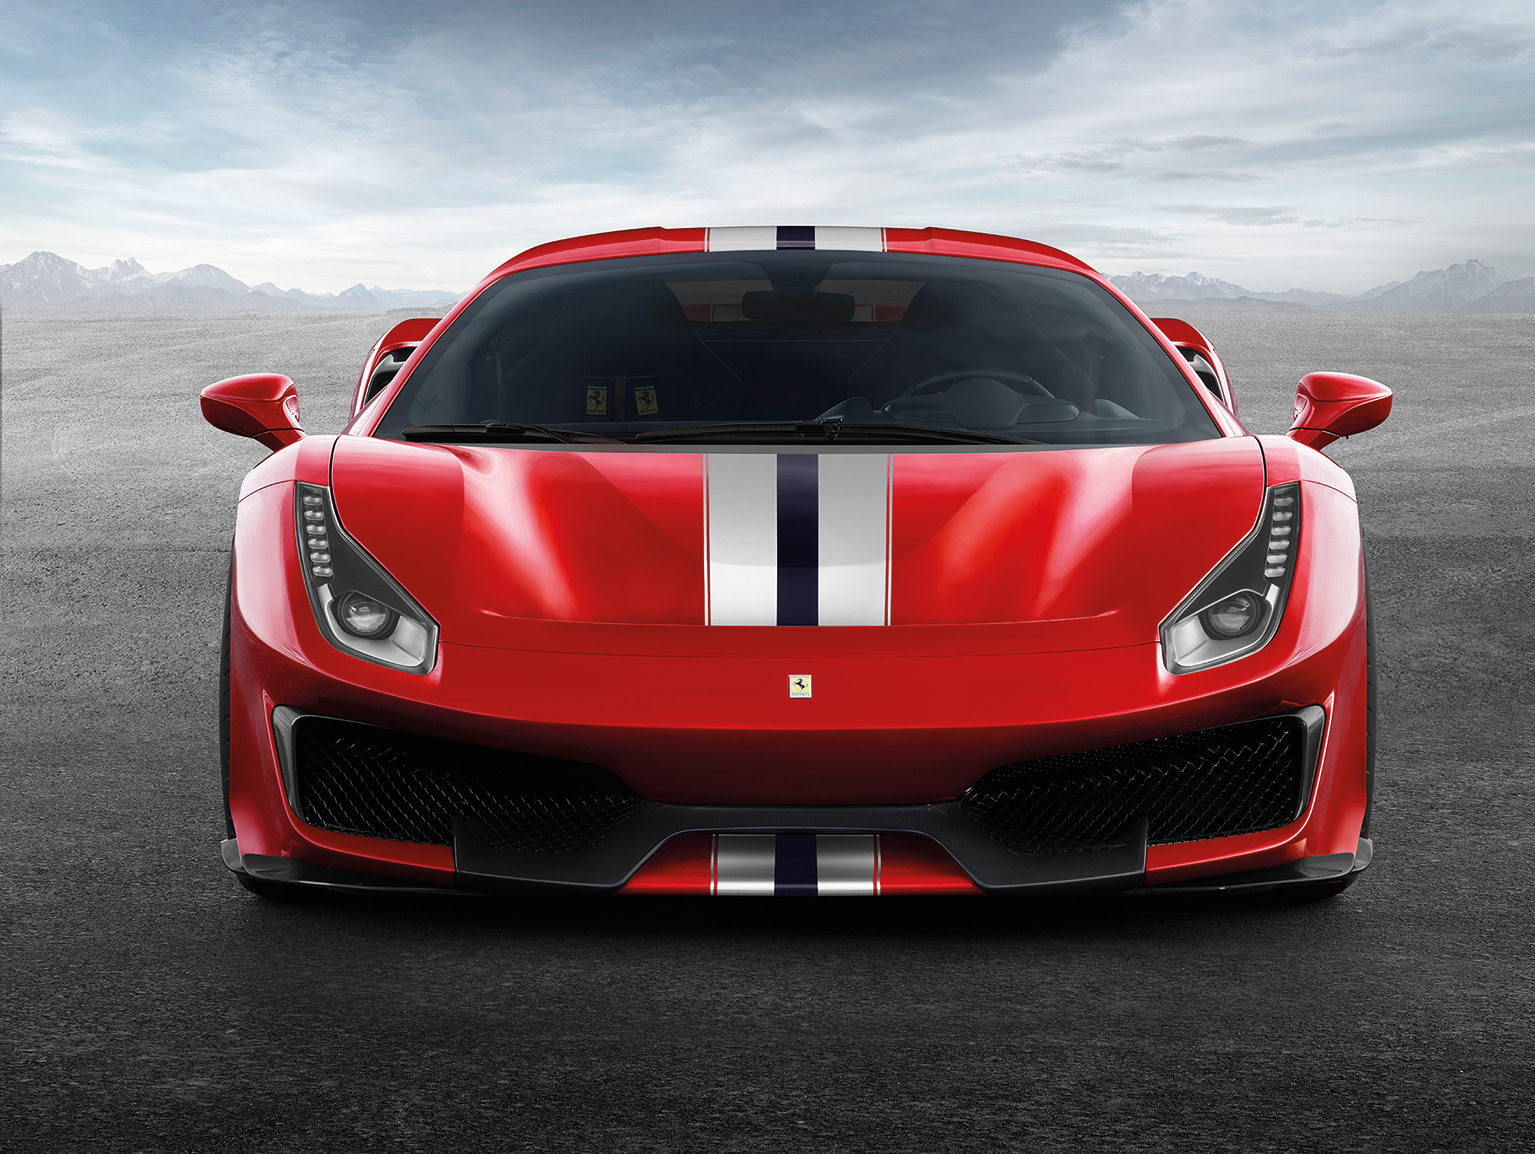 Ferrari's 488 Pista is fitted with the most powerful V8 engine in the company's history.